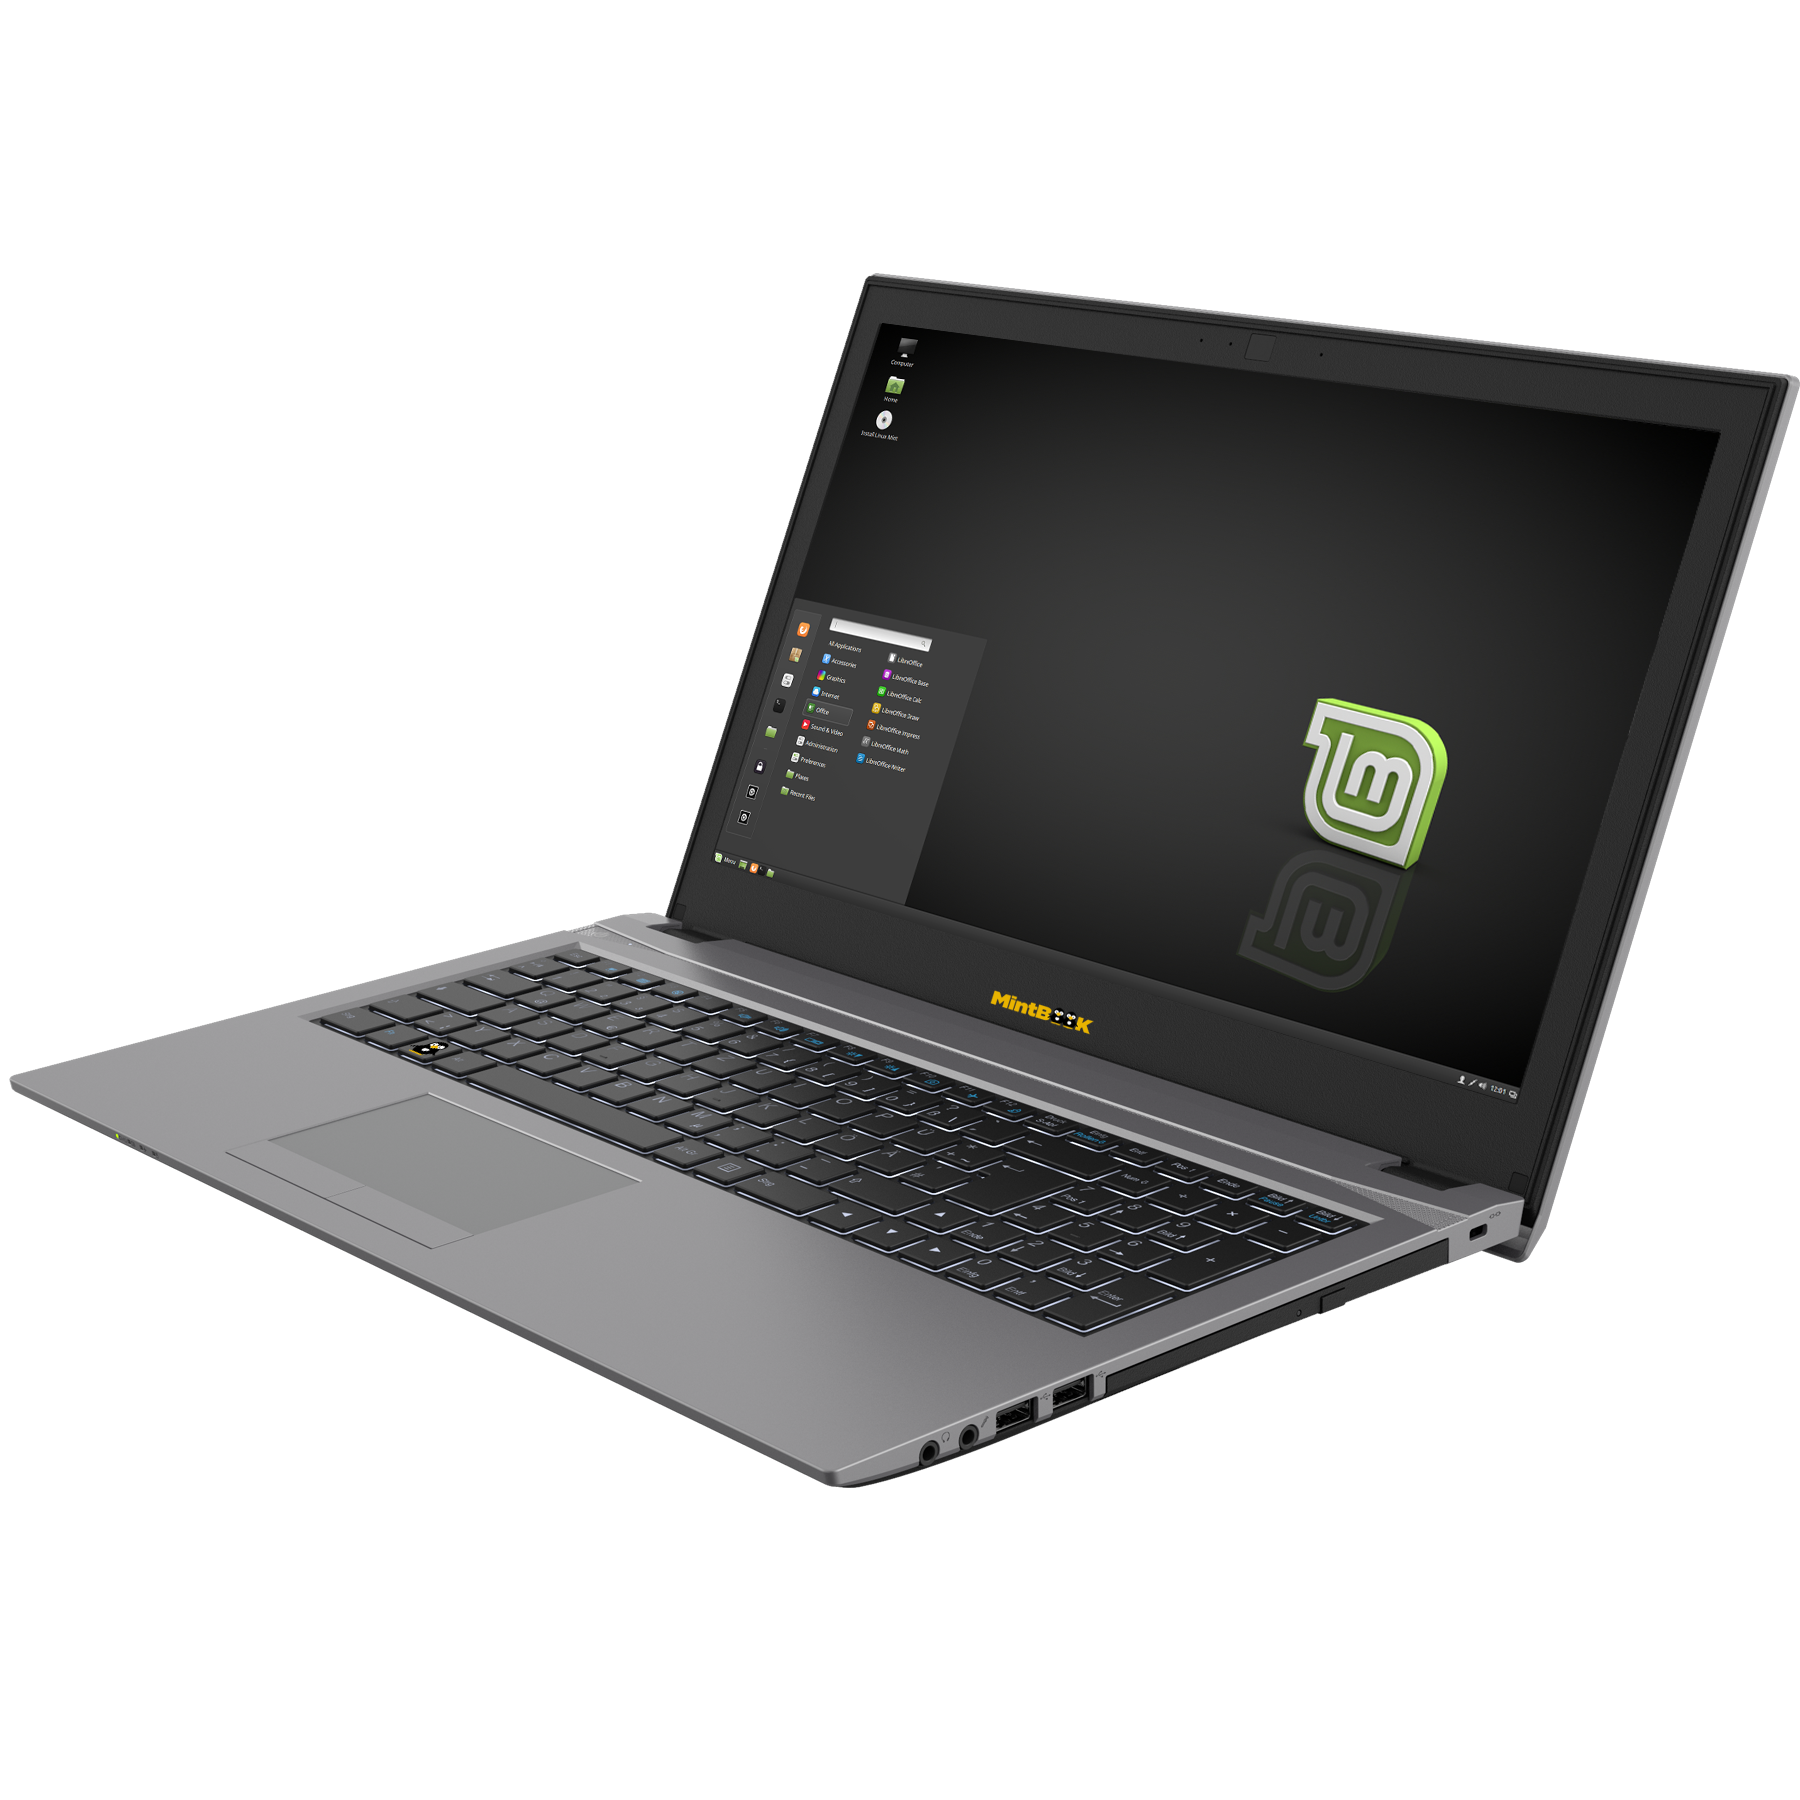 Linux-Mint NoteBook 15,6